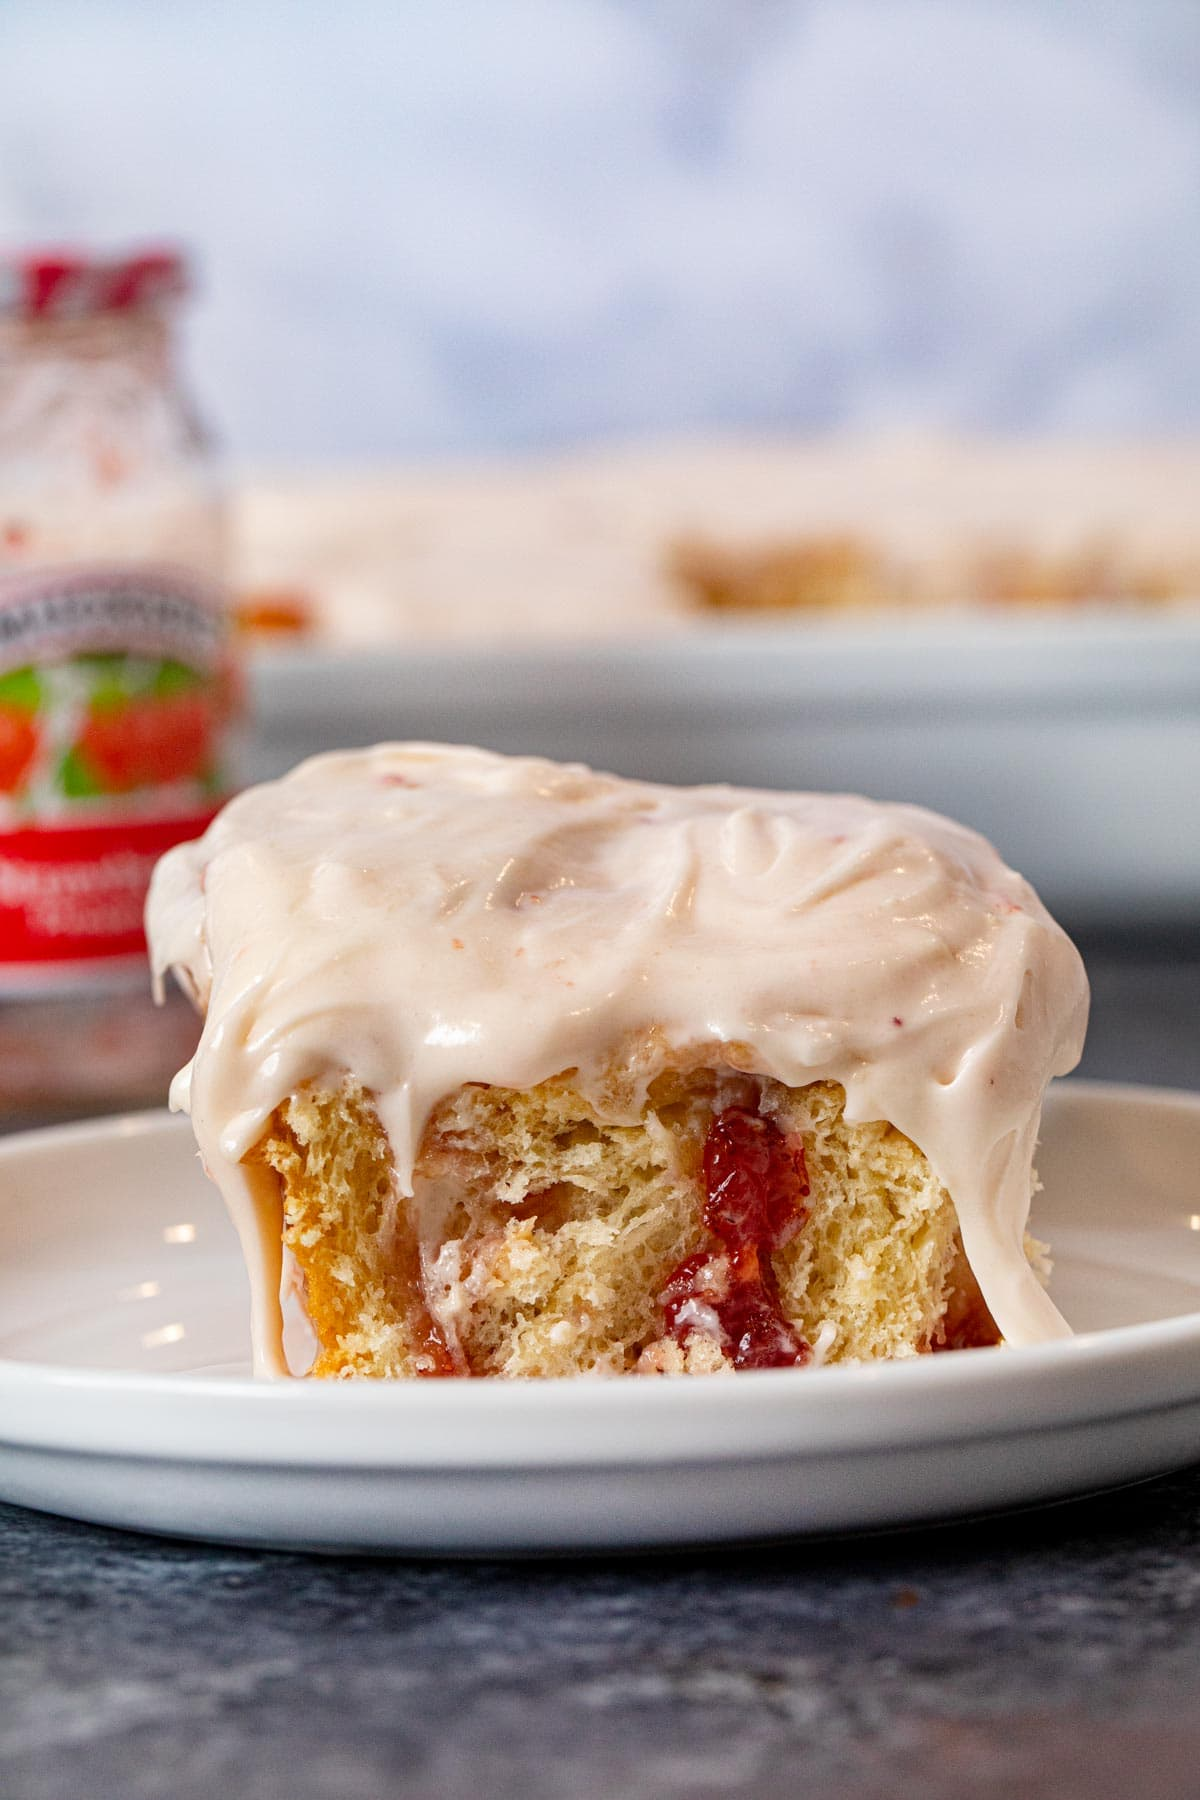 Strawberry Roll on plate